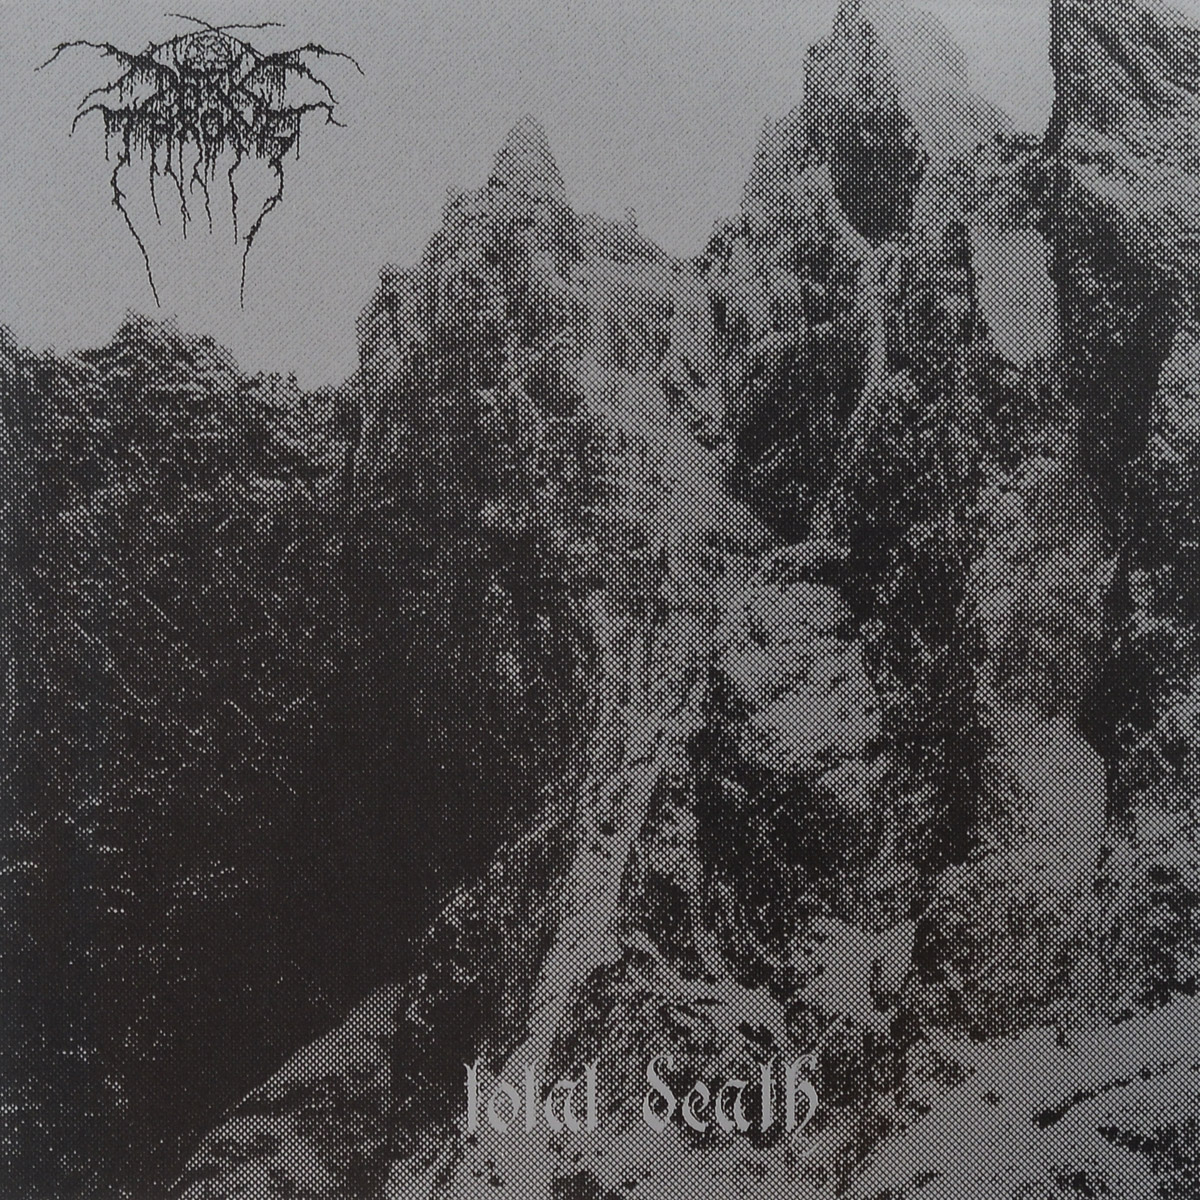 CD2:Contains 'Total Death' Featuring Commentary From Nocturno And Fenriz